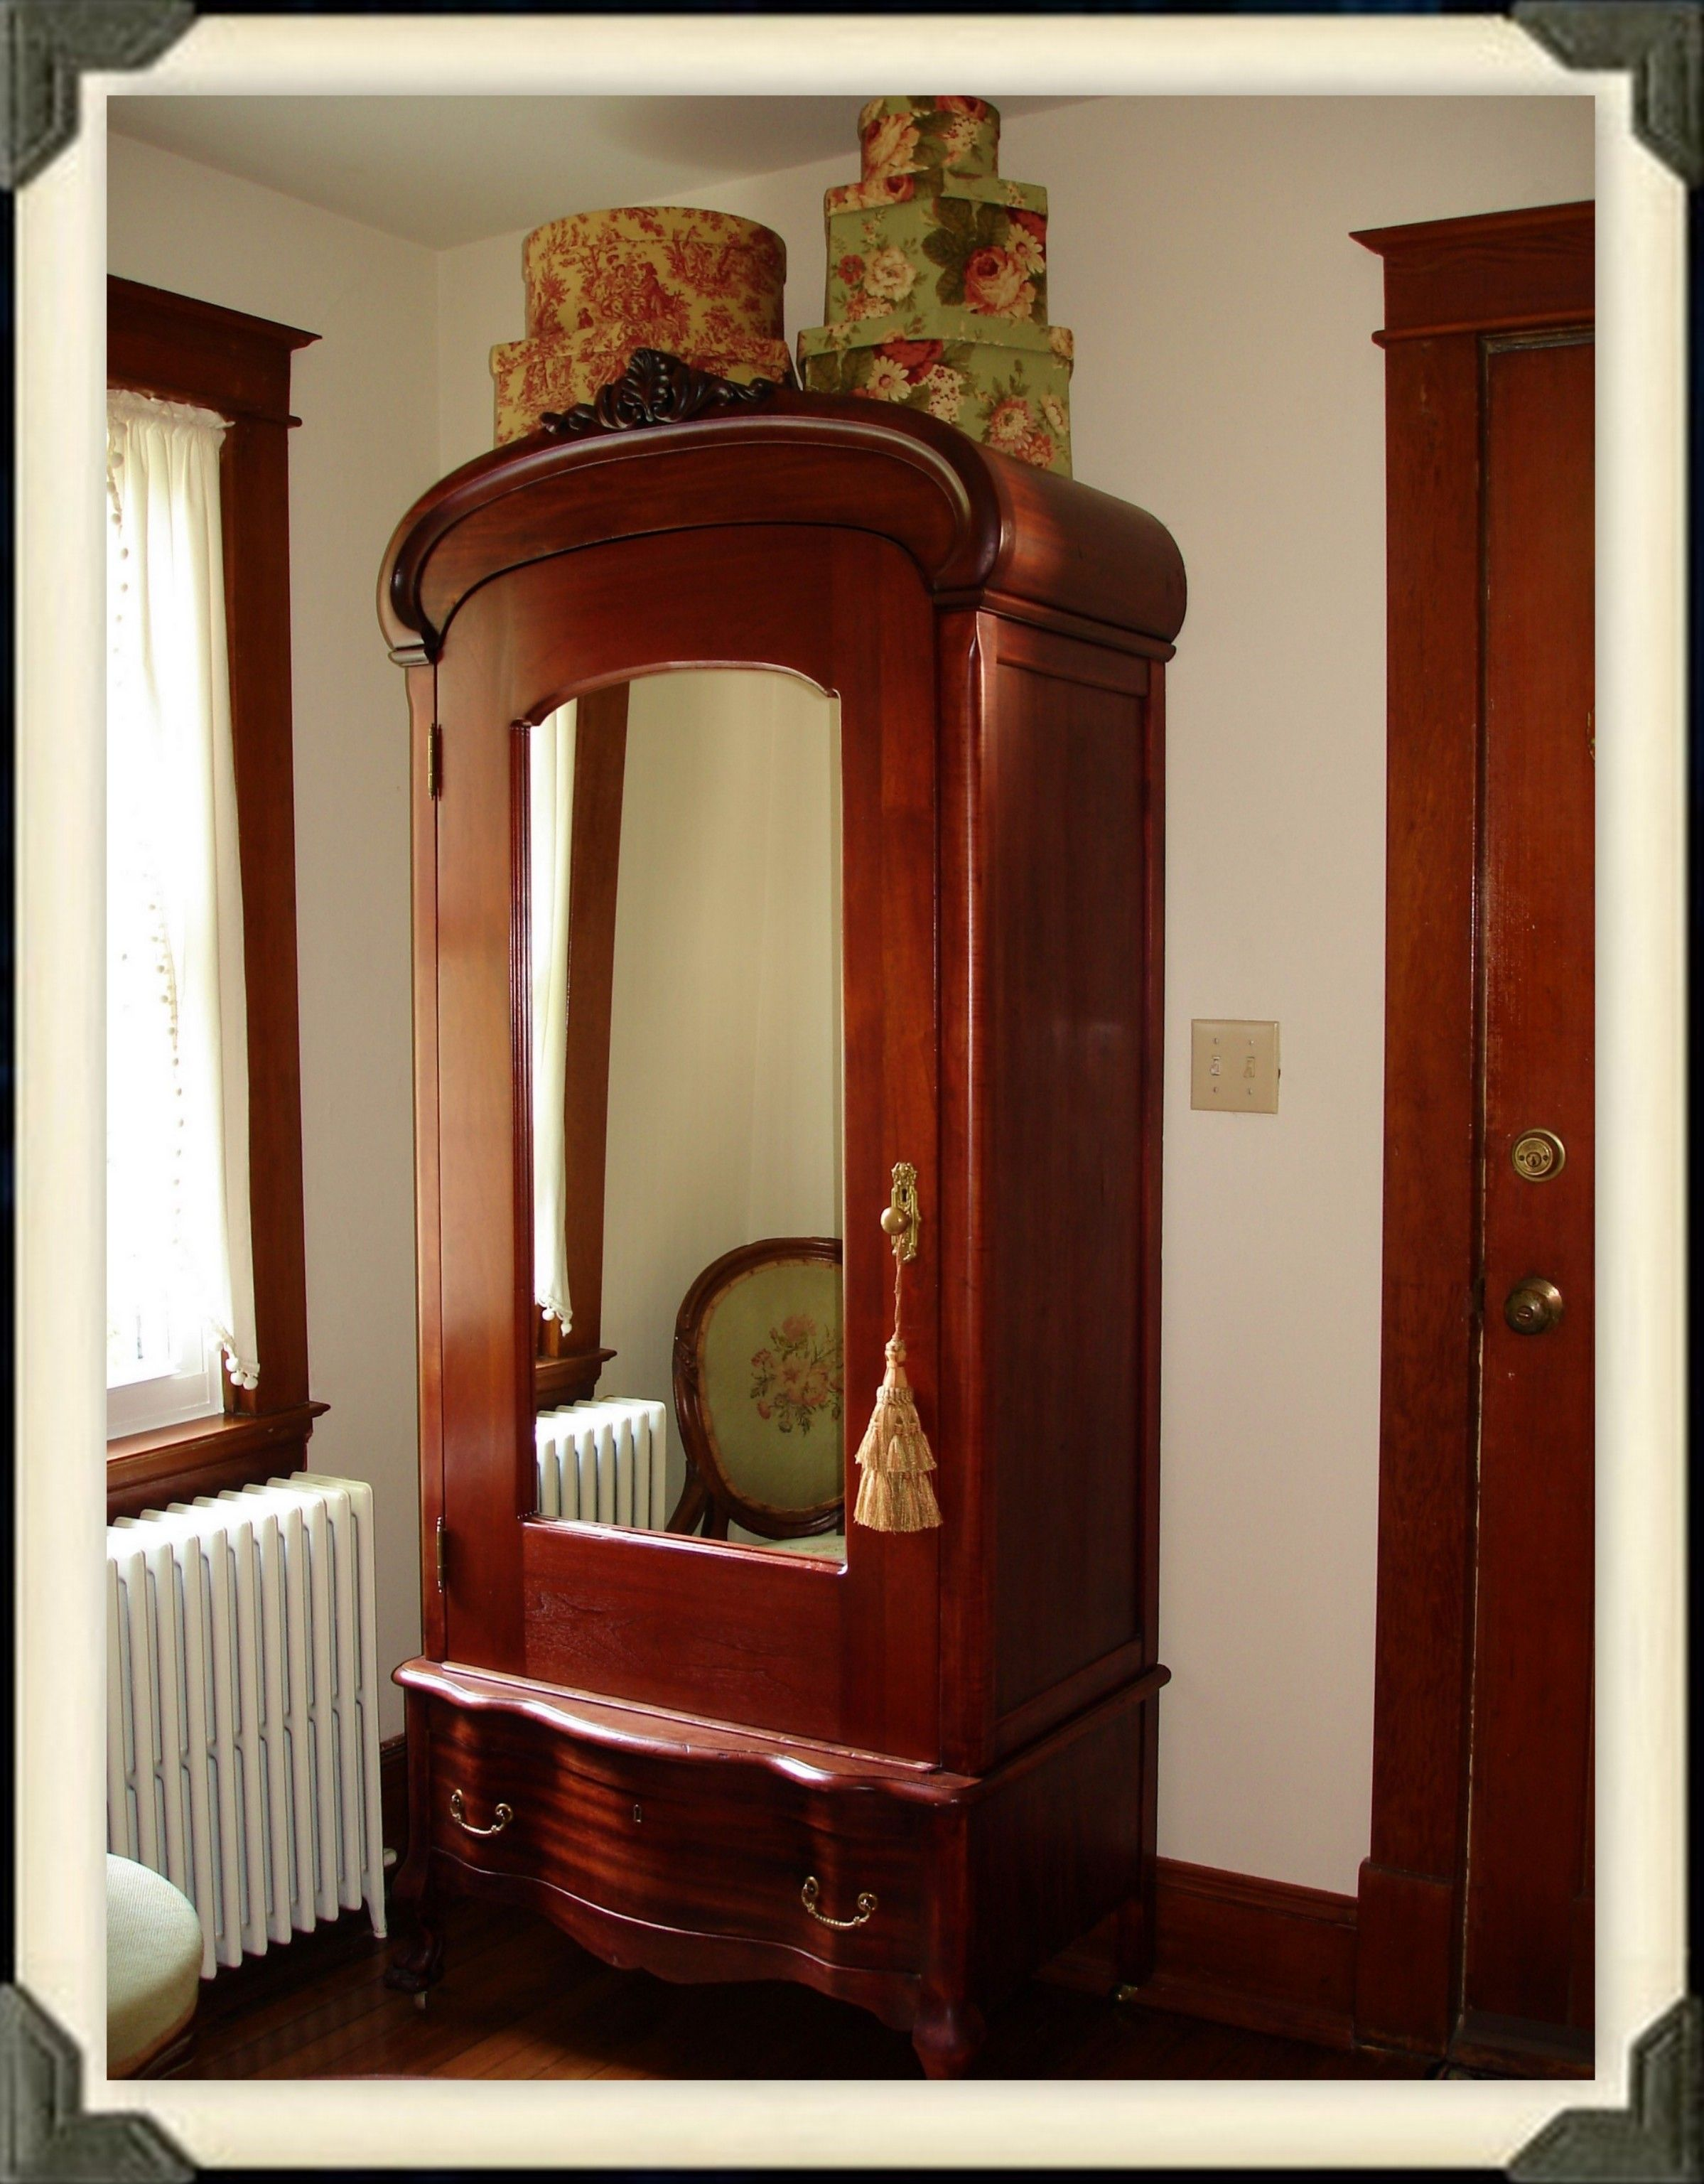 The Front Hall I Love This Antique Wardrobe Victorian Design House Styles Antique Inspiration